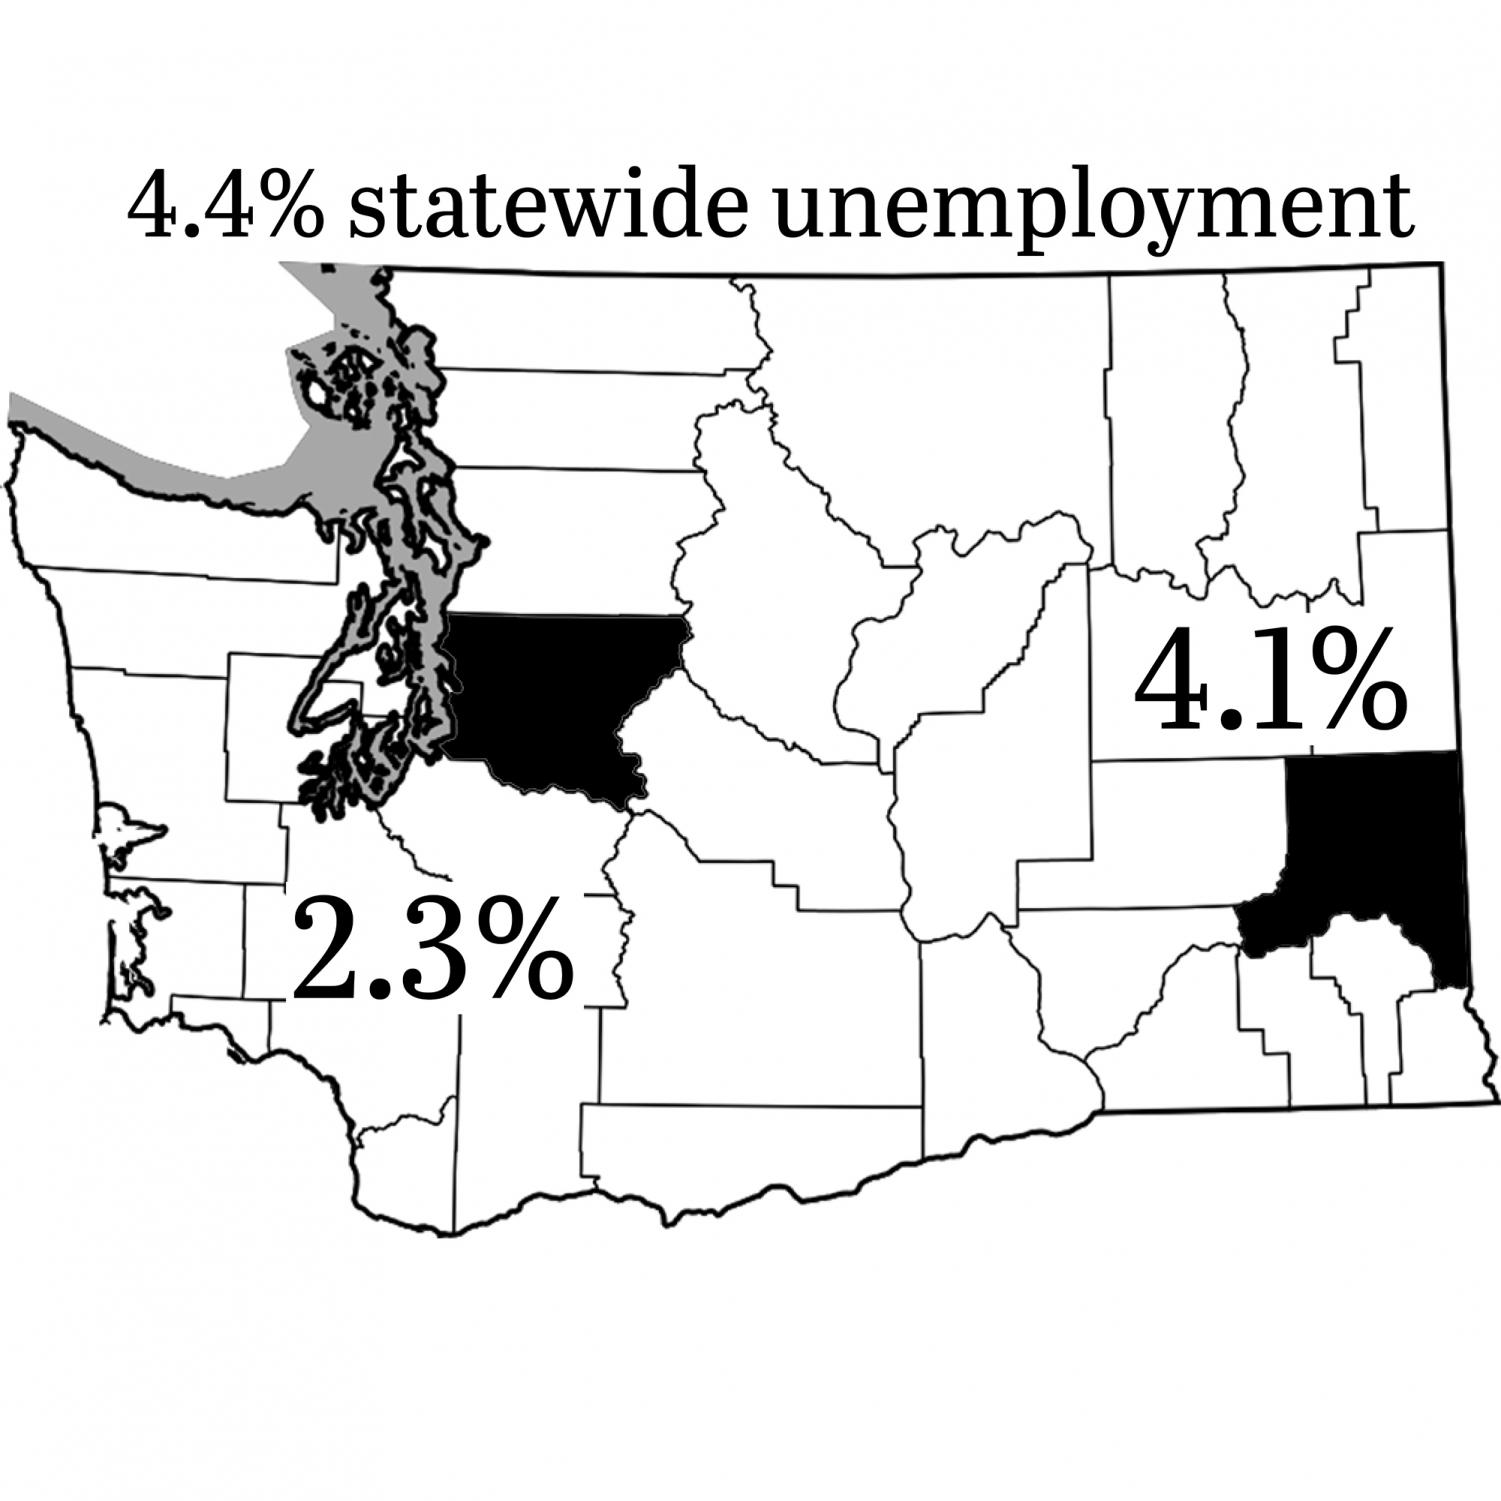 Washington also saw 12,200 new jobs in November with 10,100 jobs in the Service Providing category, according to the November report. The state lost 2,200 jobs in the Retail Trade category.